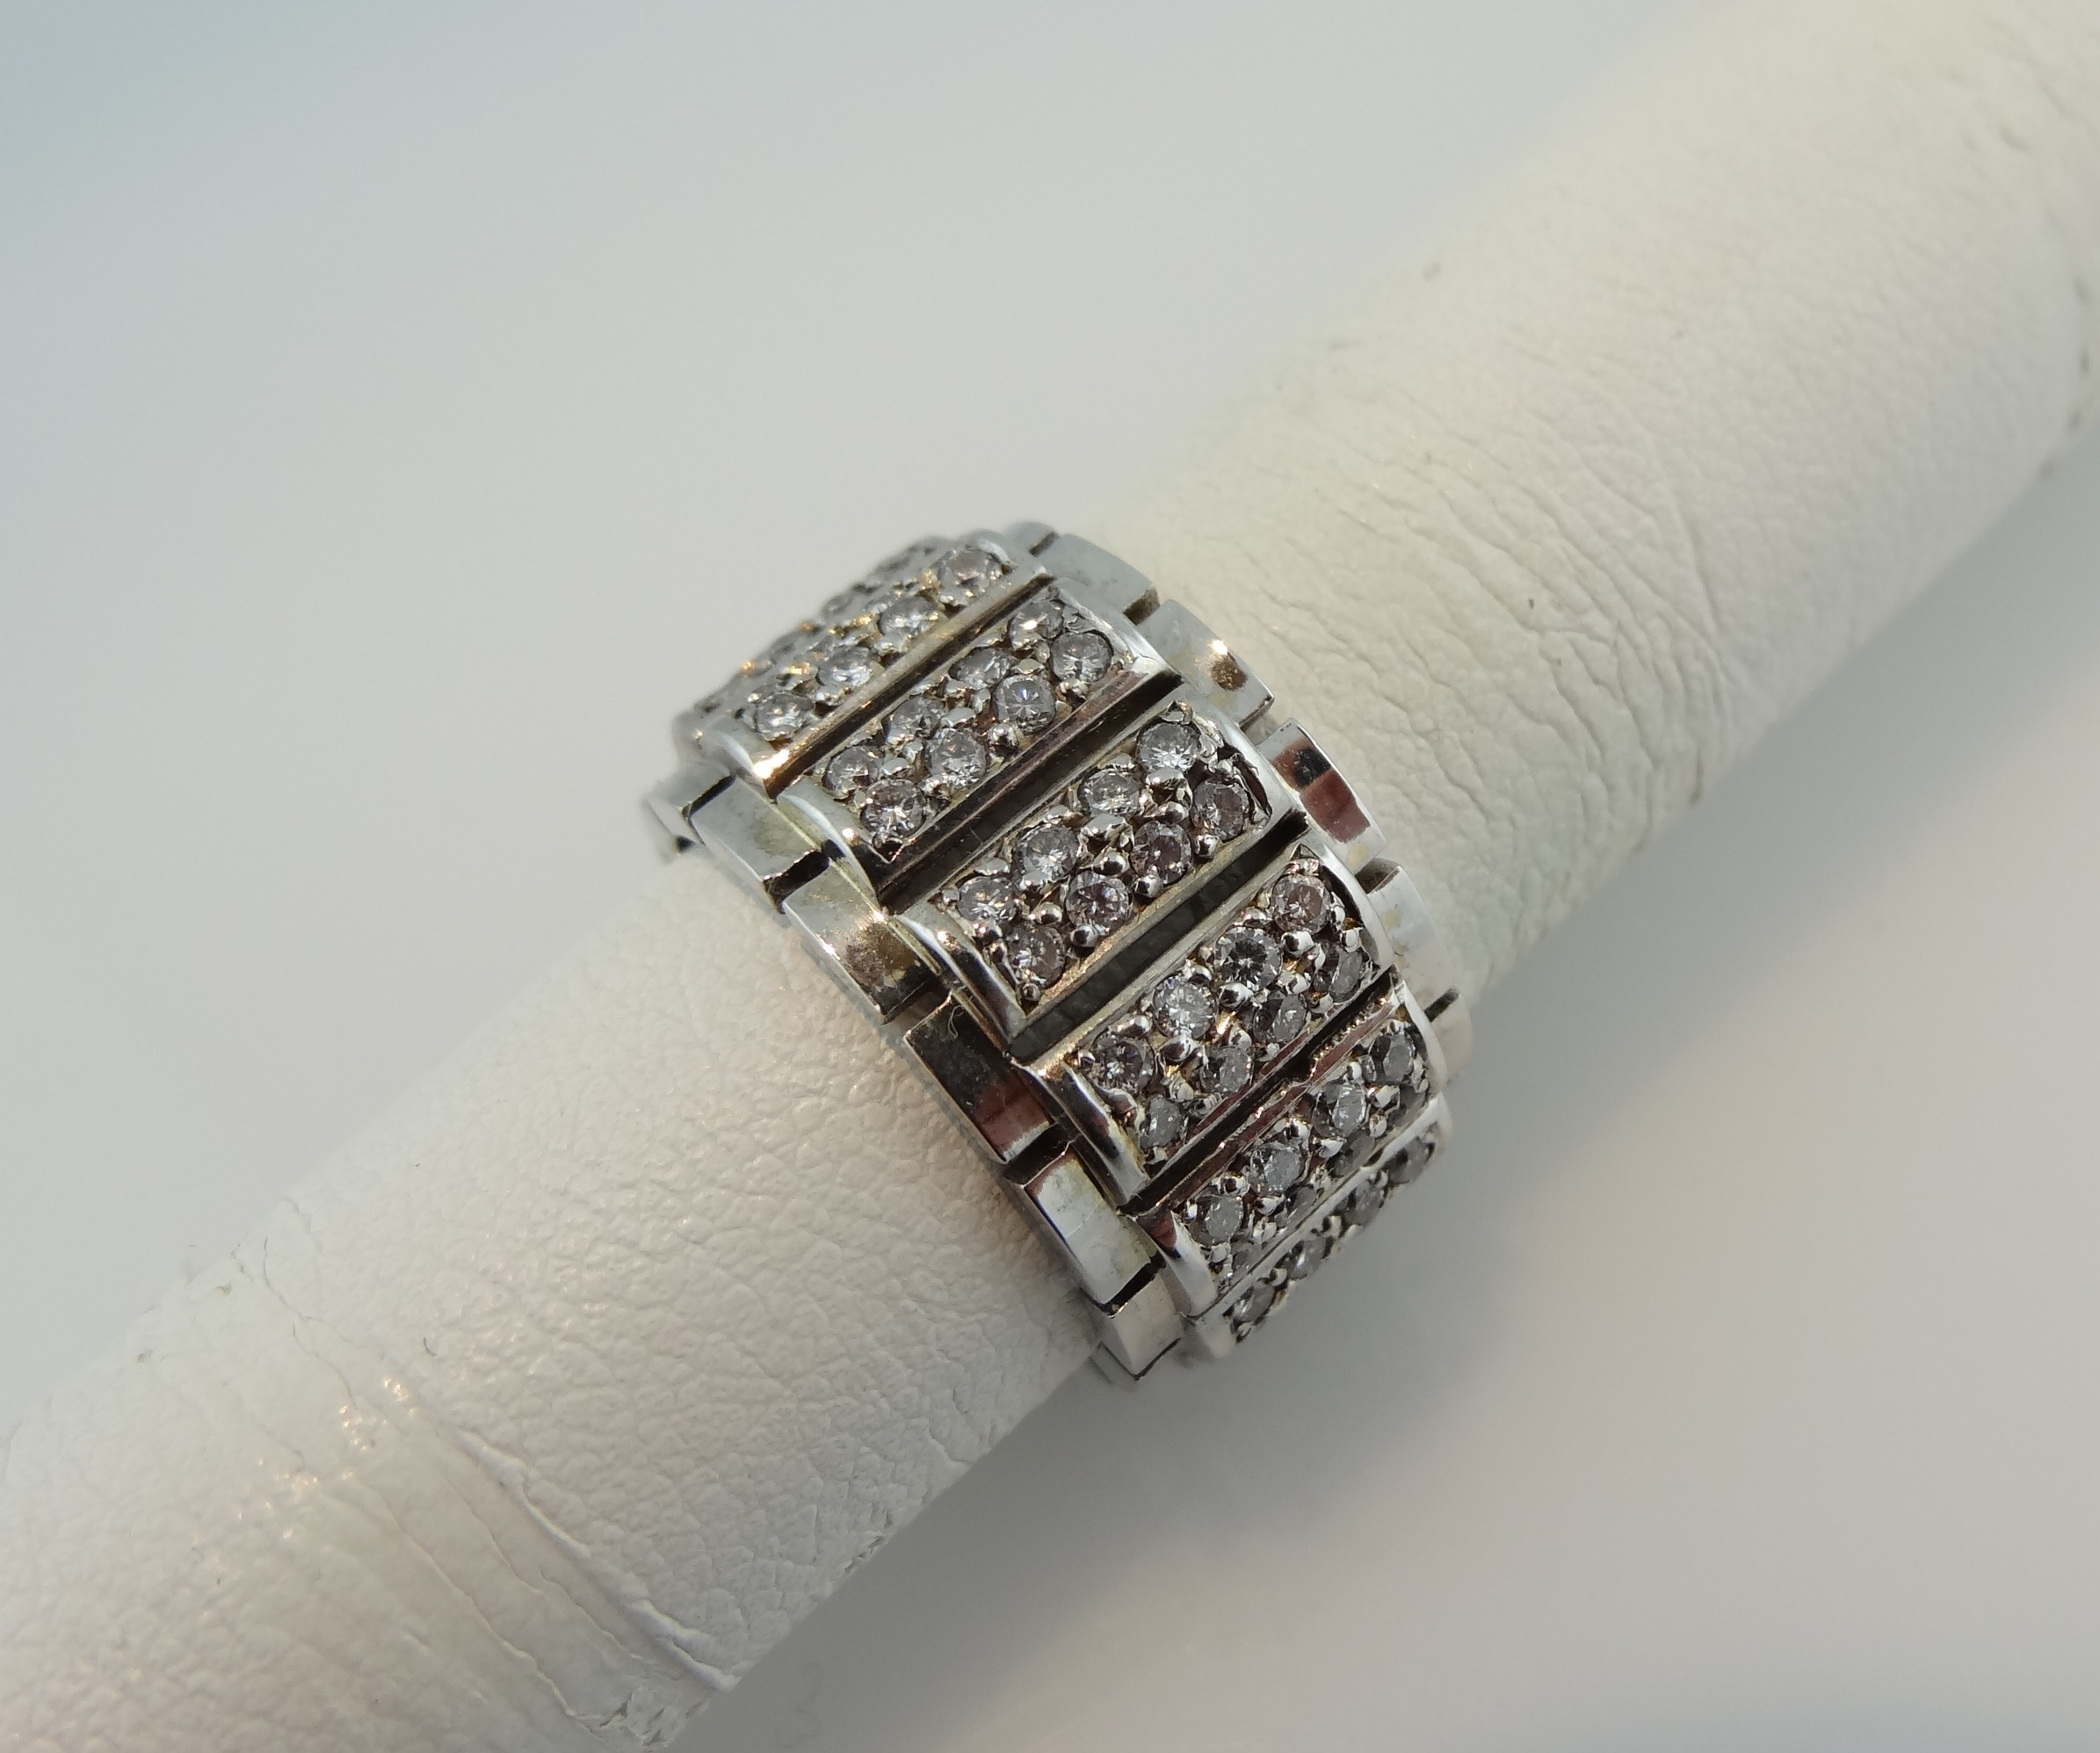 i rose wedding watches beverly abbc bands stackable gold and jewelry eternity charm diamond band tdw free h hills product overstock white shipping today